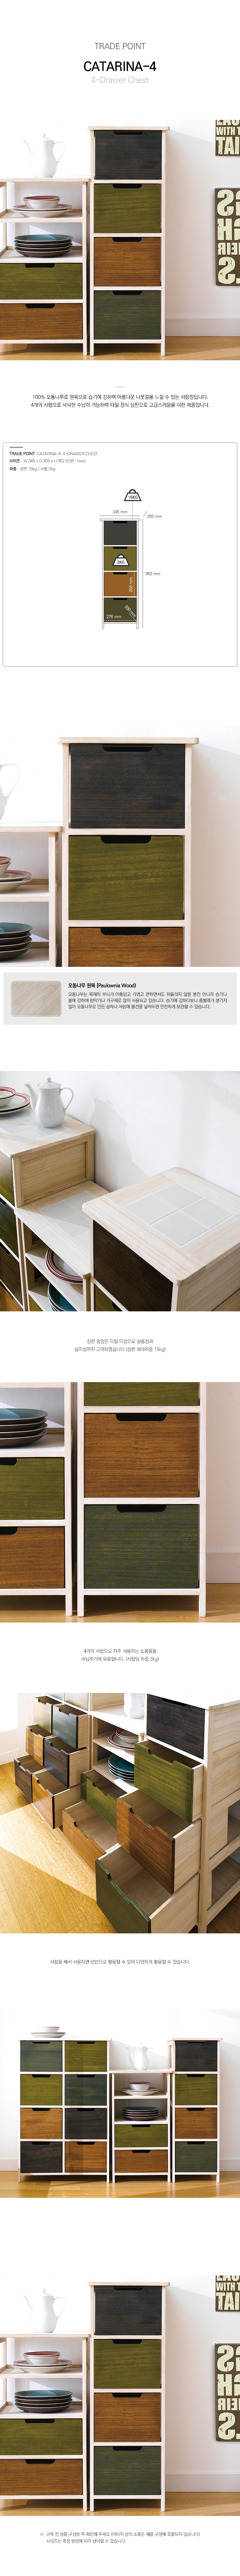 Catarina-4_Drawer_Chest_180509.jpg